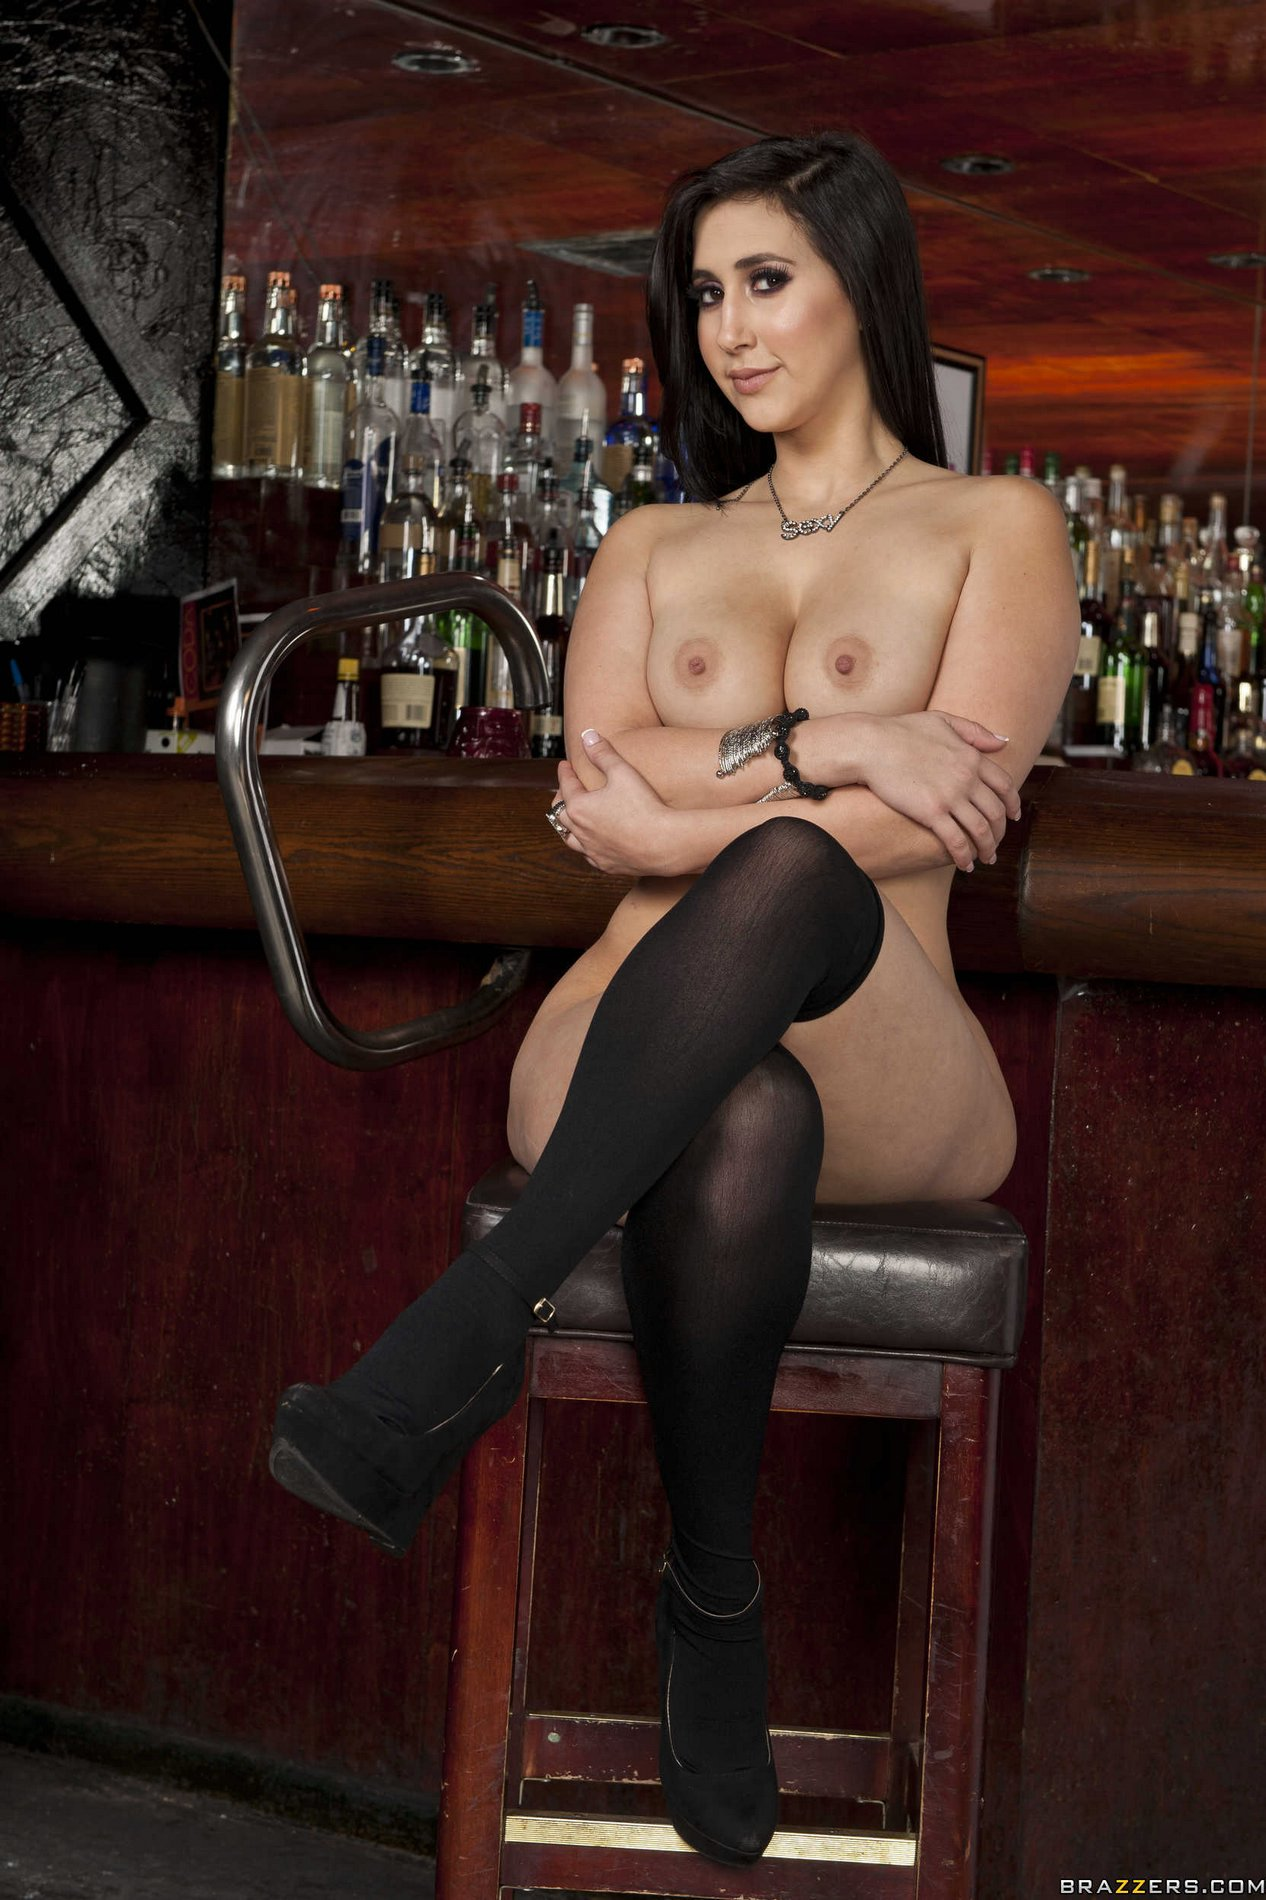 Valerie Kay in black stockings strips and poses at the bar ...